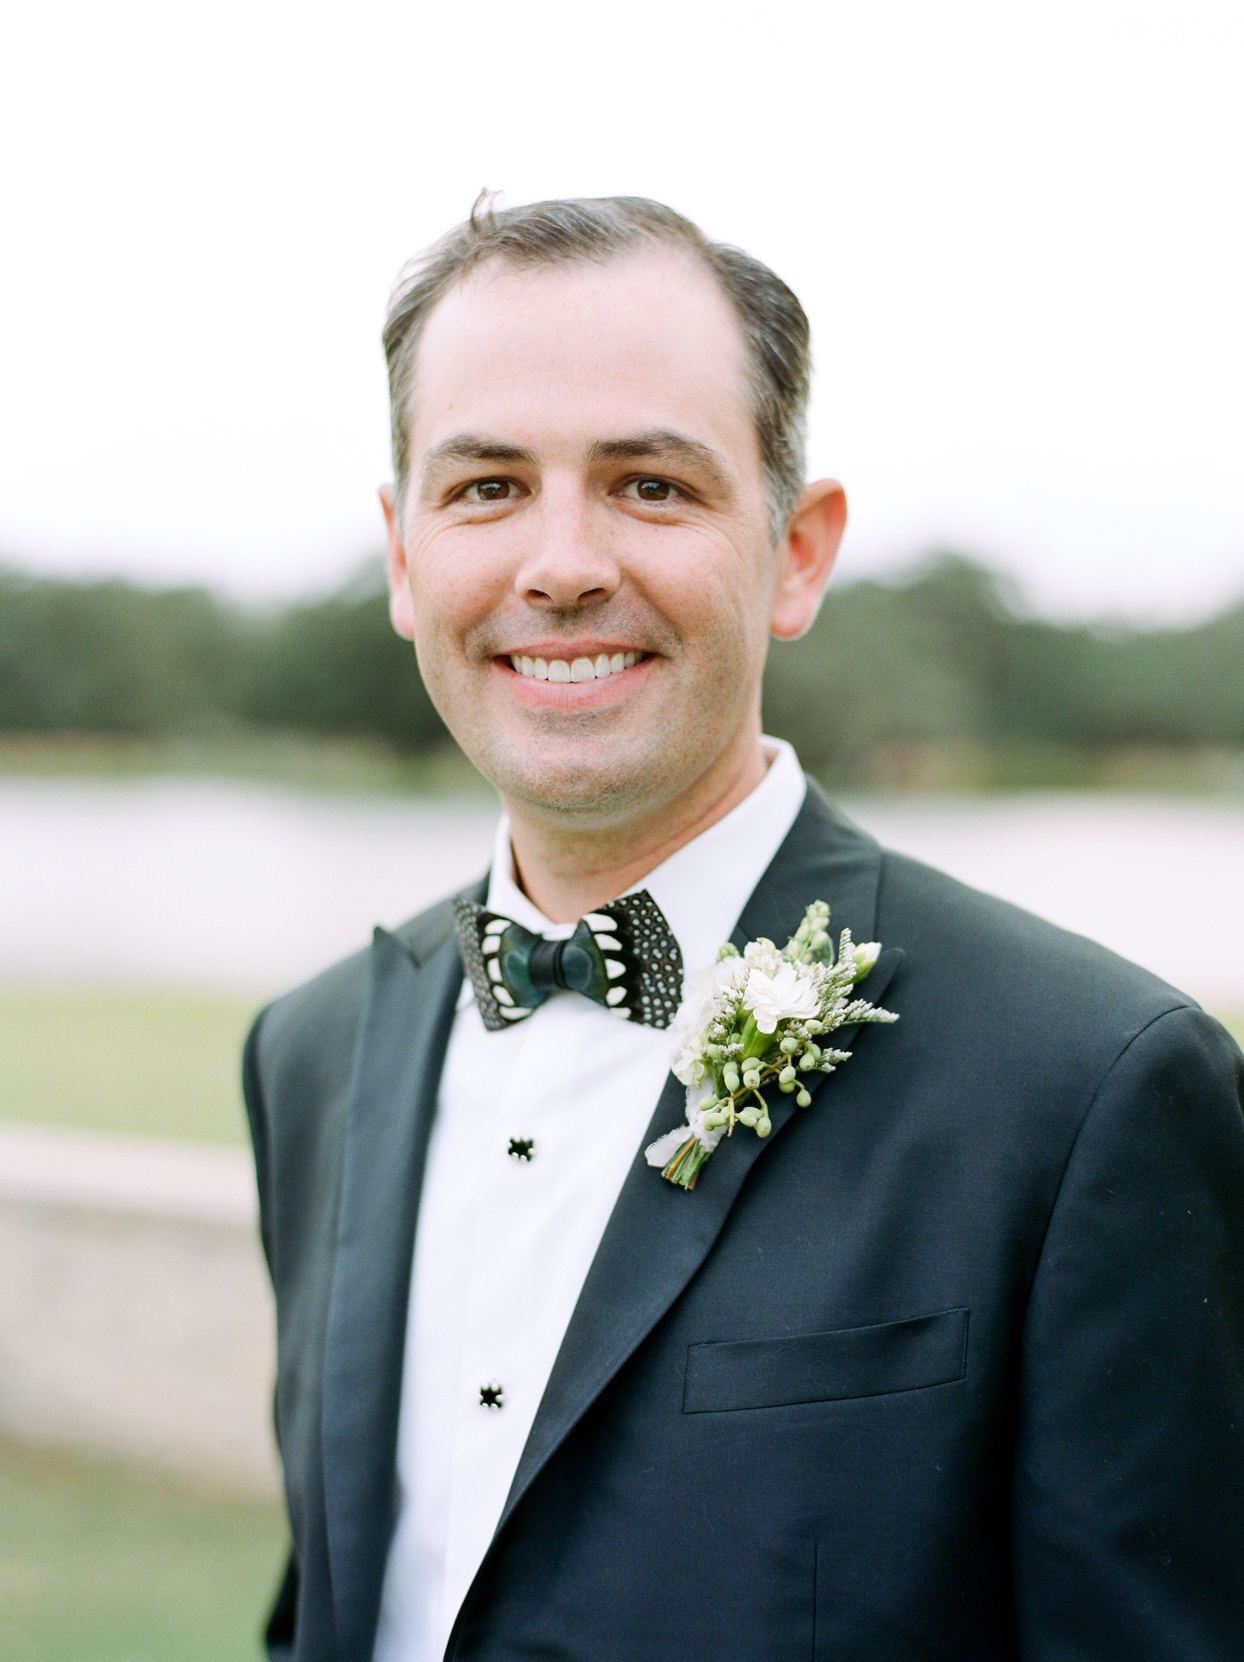 groom in black suite wearing white floral boutonniere